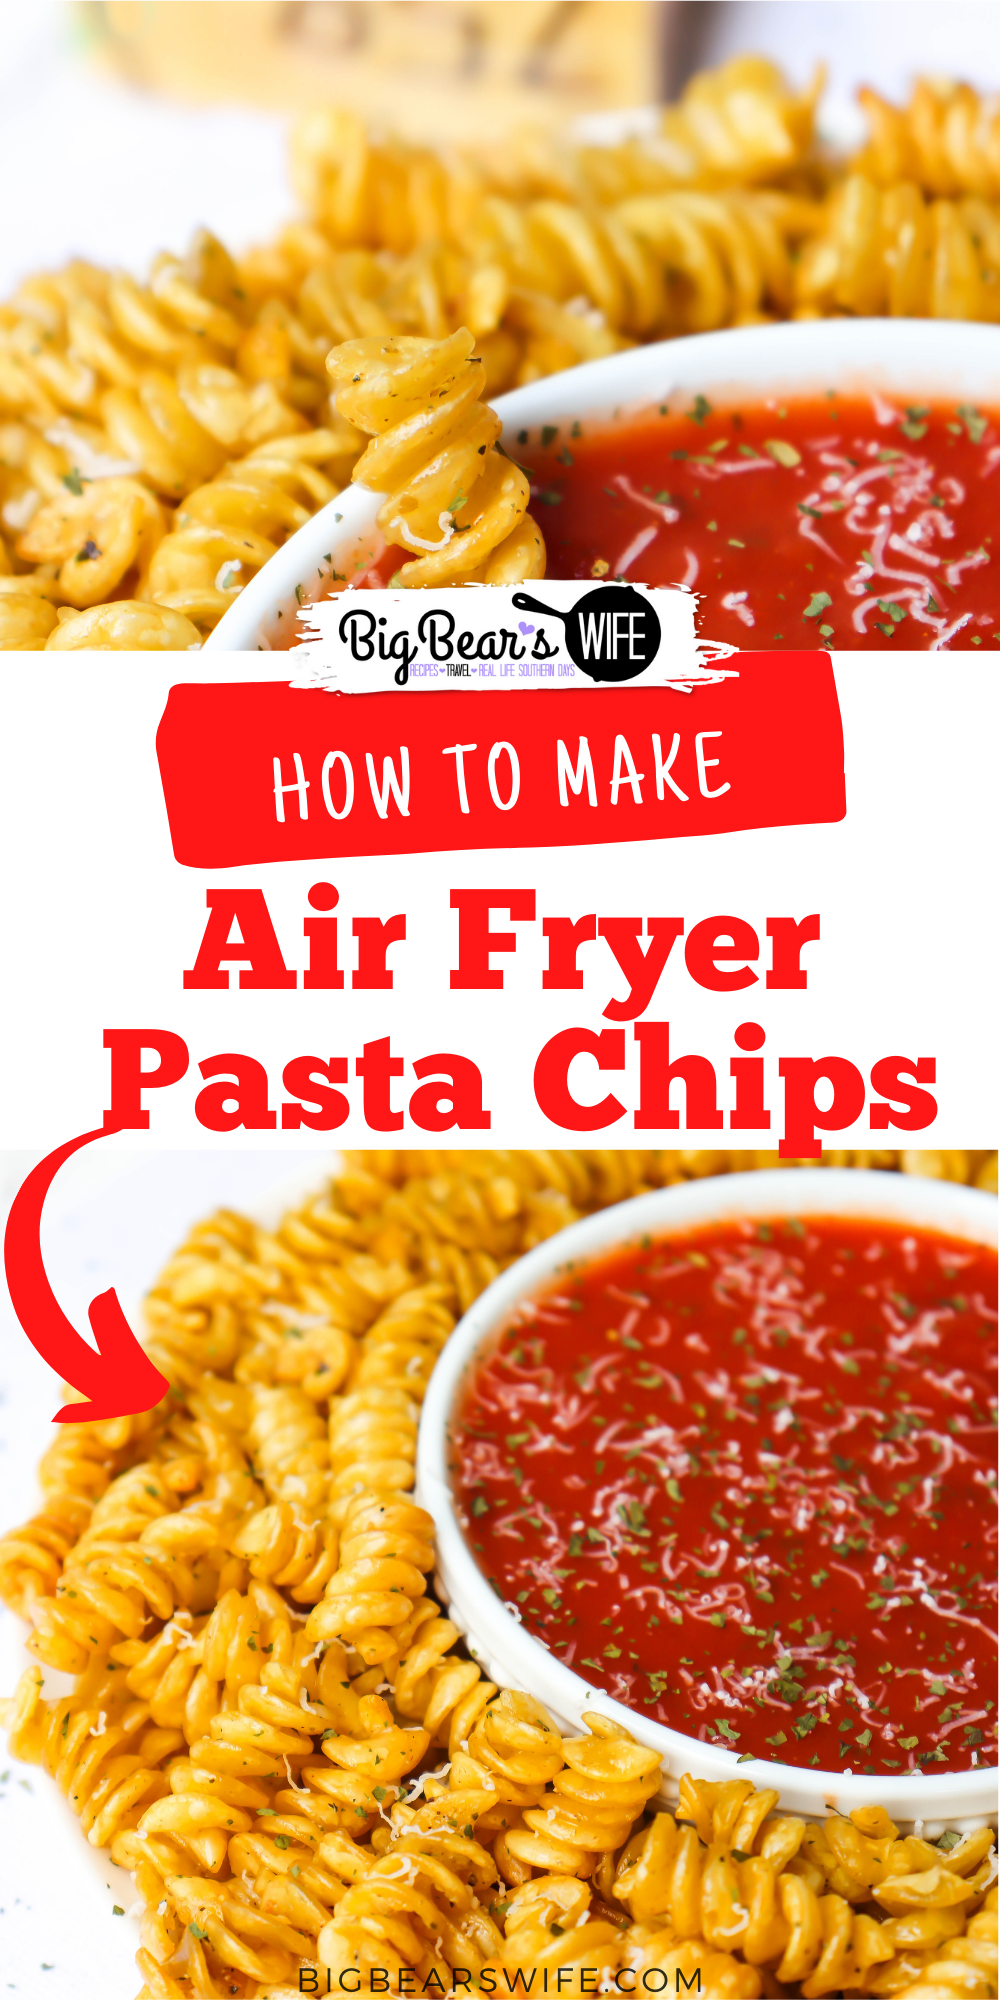 Crispy Air Fryer Pasta Chips are made with al dente pasta, grated parmesan, Badia's Complete Seasoning and a bit of olive oil in the air fryer! Perfect little snack bites for an appetizer tray or to snack on while watching a movie! via @bigbearswife